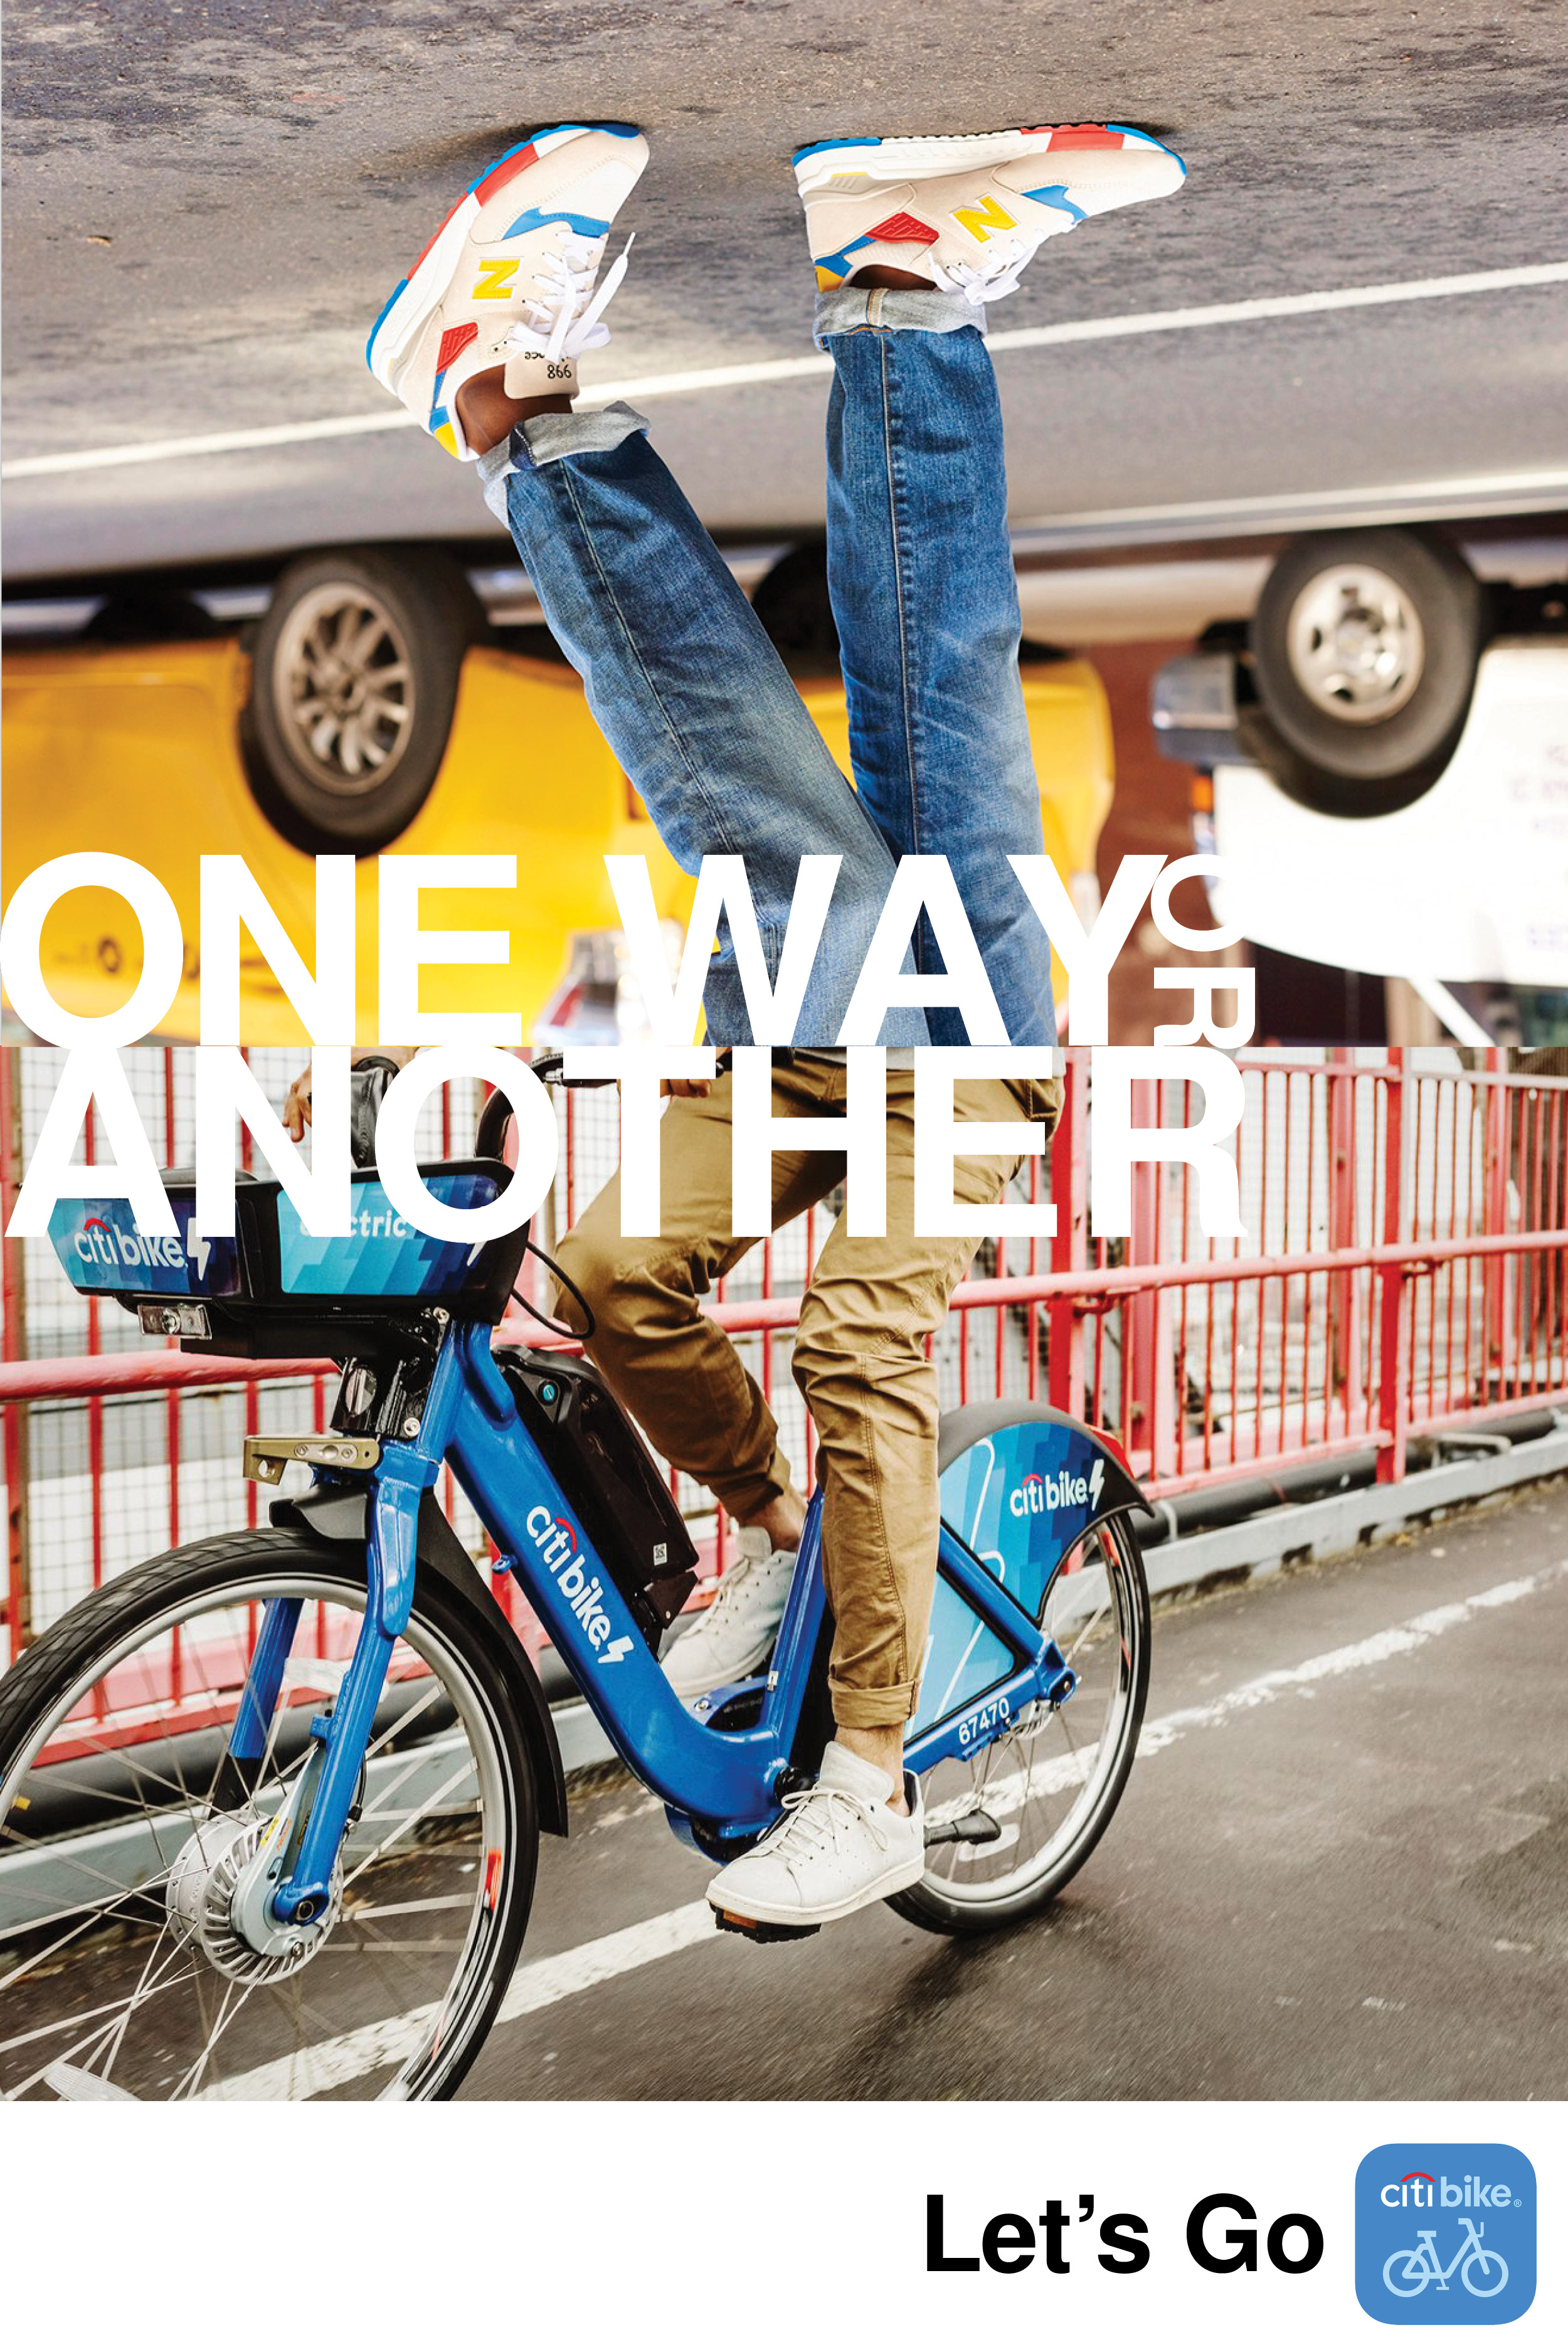 An upside-down image of a pair of legs in skinny jeans with colorful sneakers walking on pavement infrot of a parked taxi above a right-side up image of a pair of legs in tight kakhis and white sneakers riding a Citibike bicycle across an urban bridge. Reads: One way or another, Let's Go.